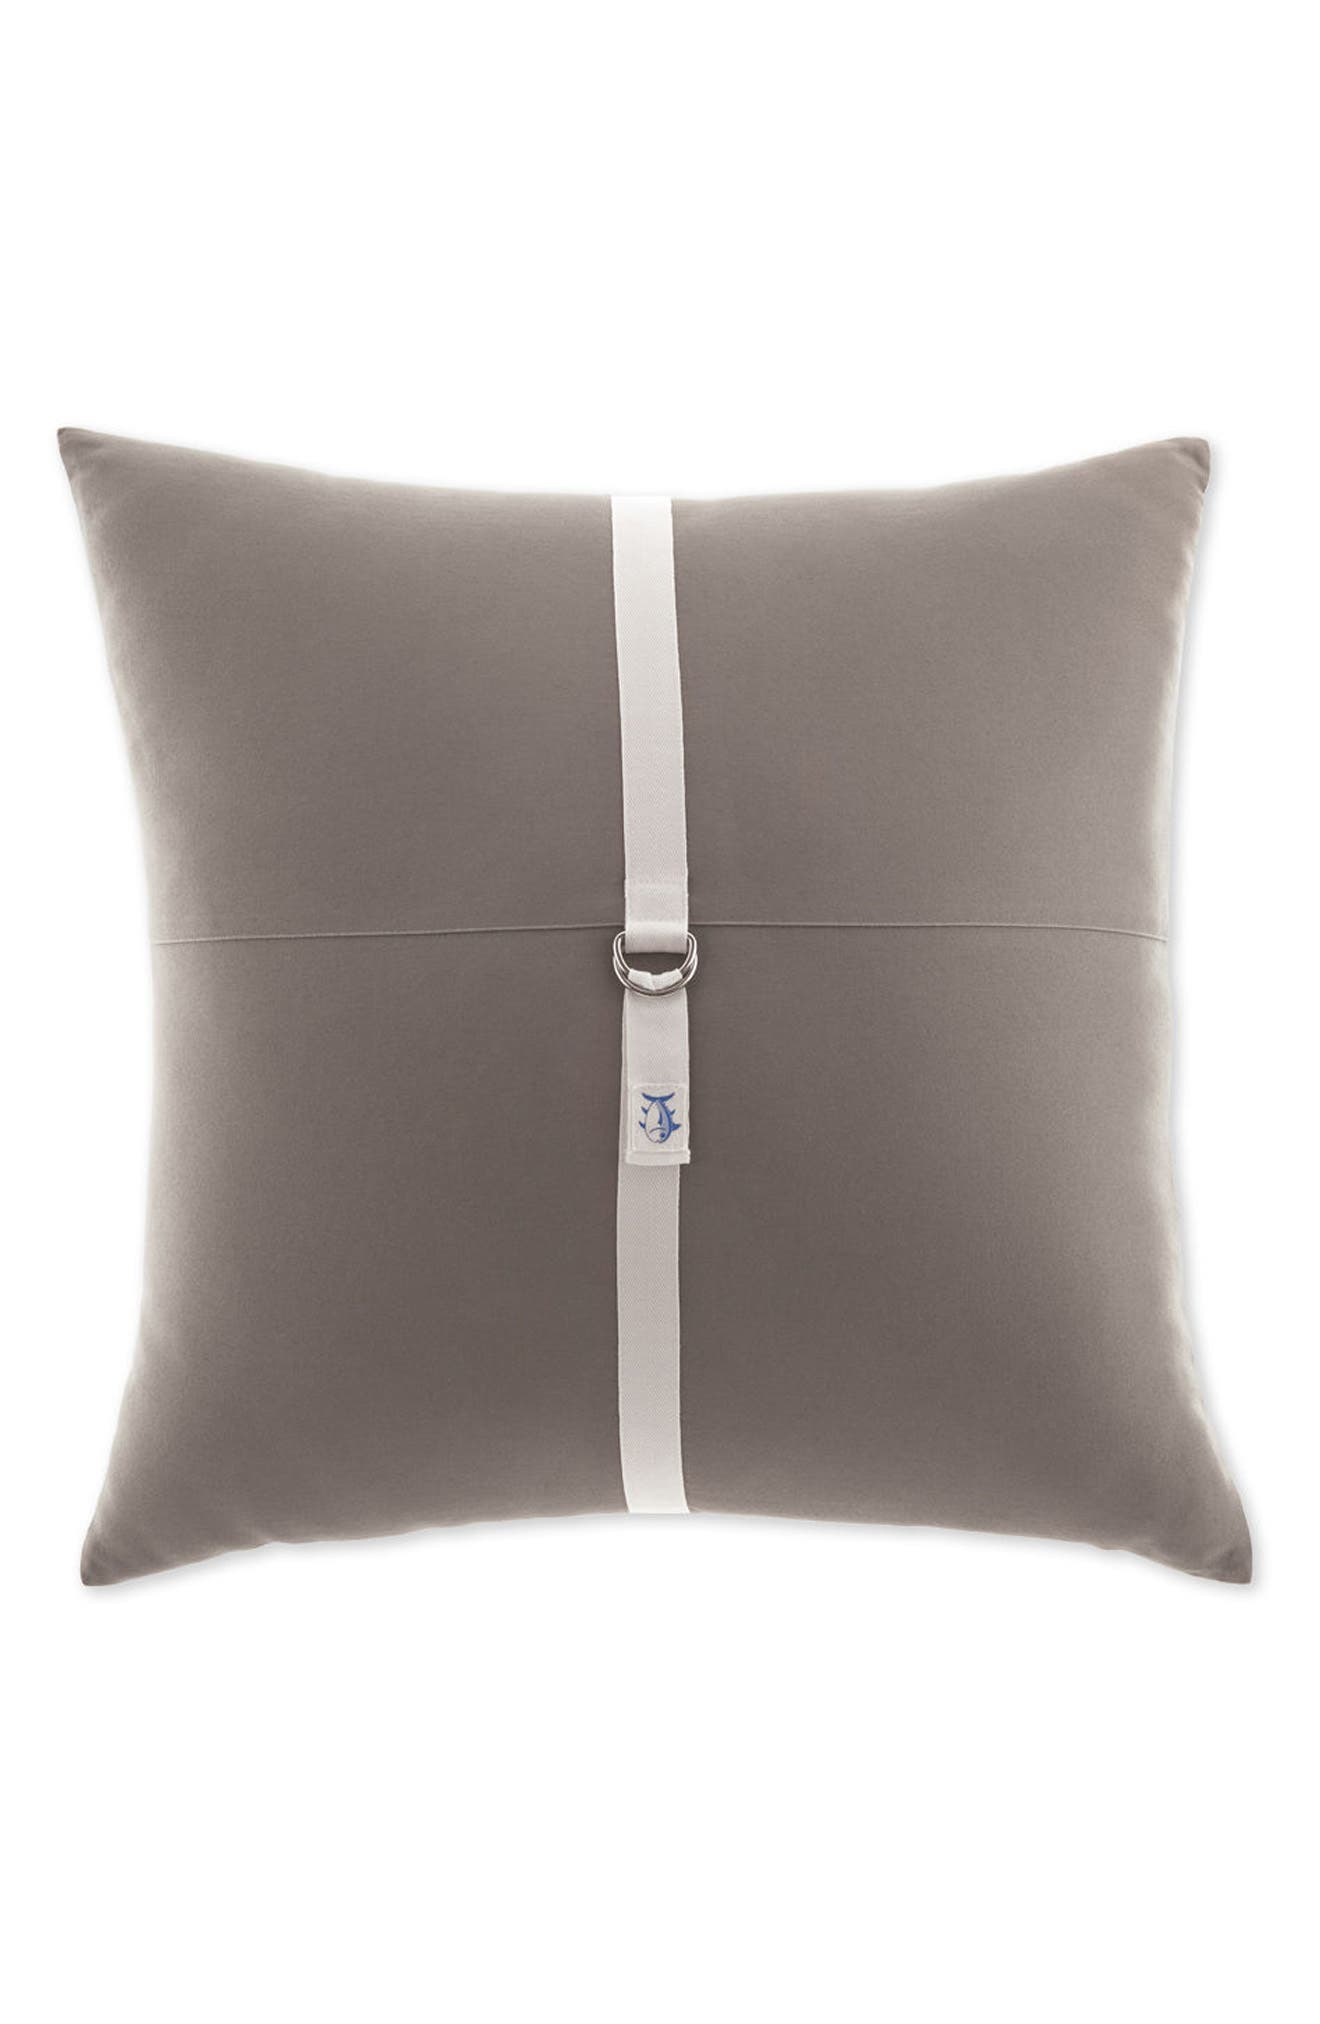 Starboard Nautical Accent Pillow,                             Main thumbnail 1, color,                             020